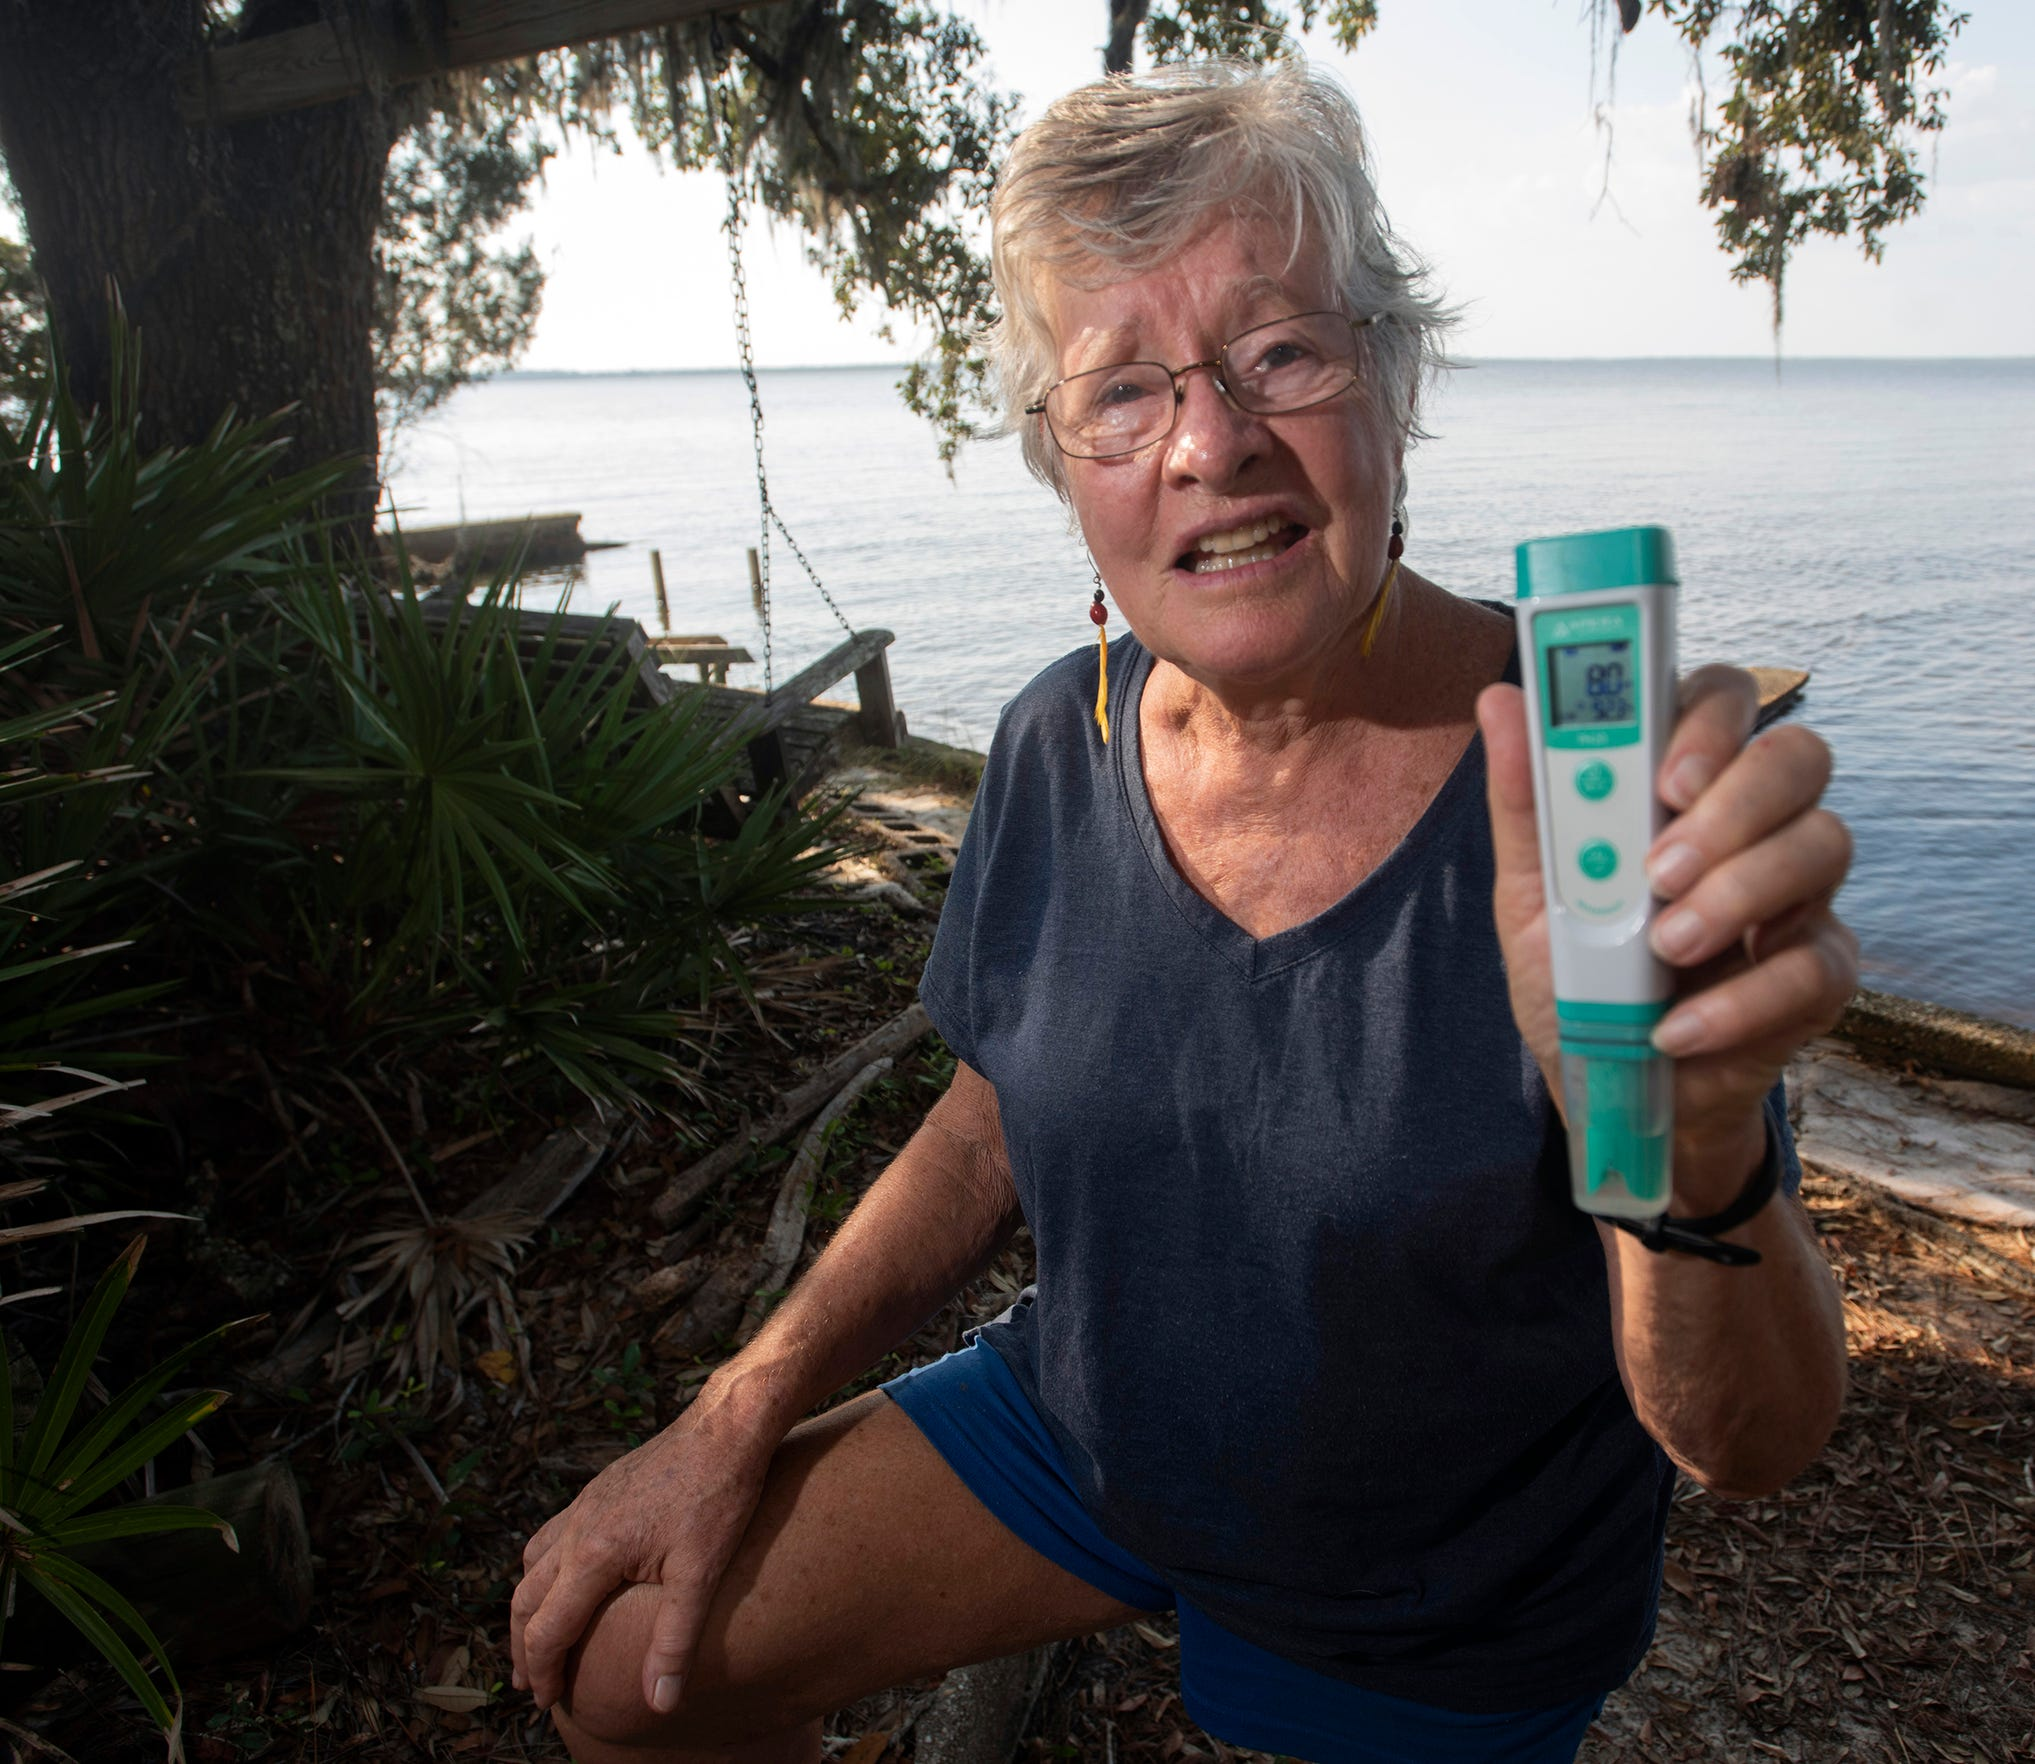 Jackie Lane shows off the PH levels of Perdido Bay from a test taken on Thursday, Oct. 3, 2019. Lane, a longtime Pensacola resident, and environmentalist has been keeping tabs on the water quality of the Perdido Bay for decades.